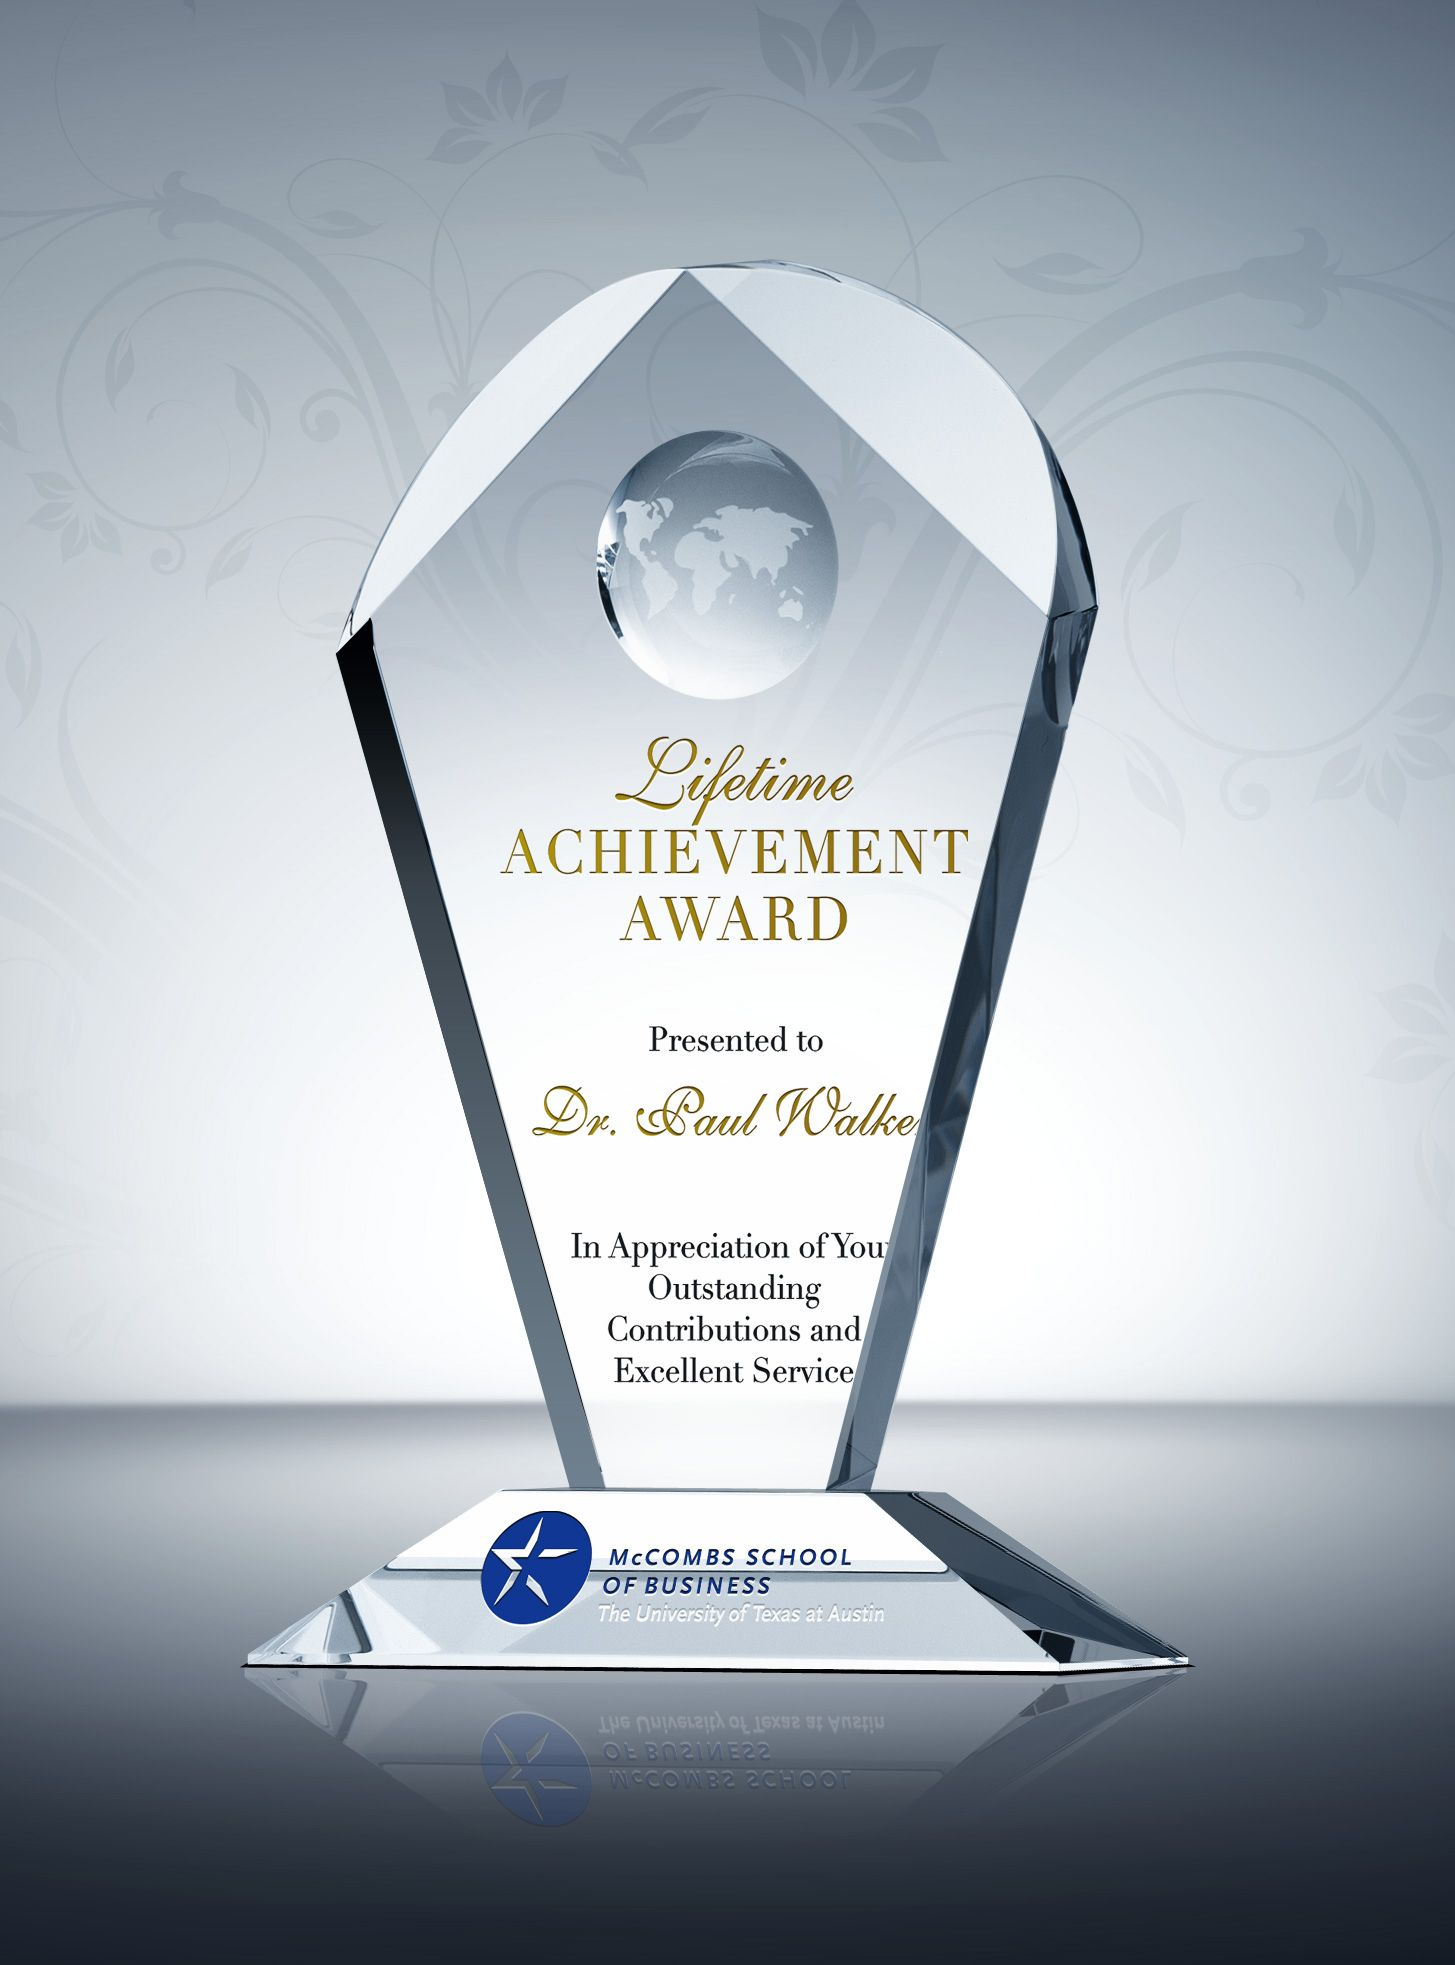 Lifetime Achievement Award Trophy  Excellence Award Wording